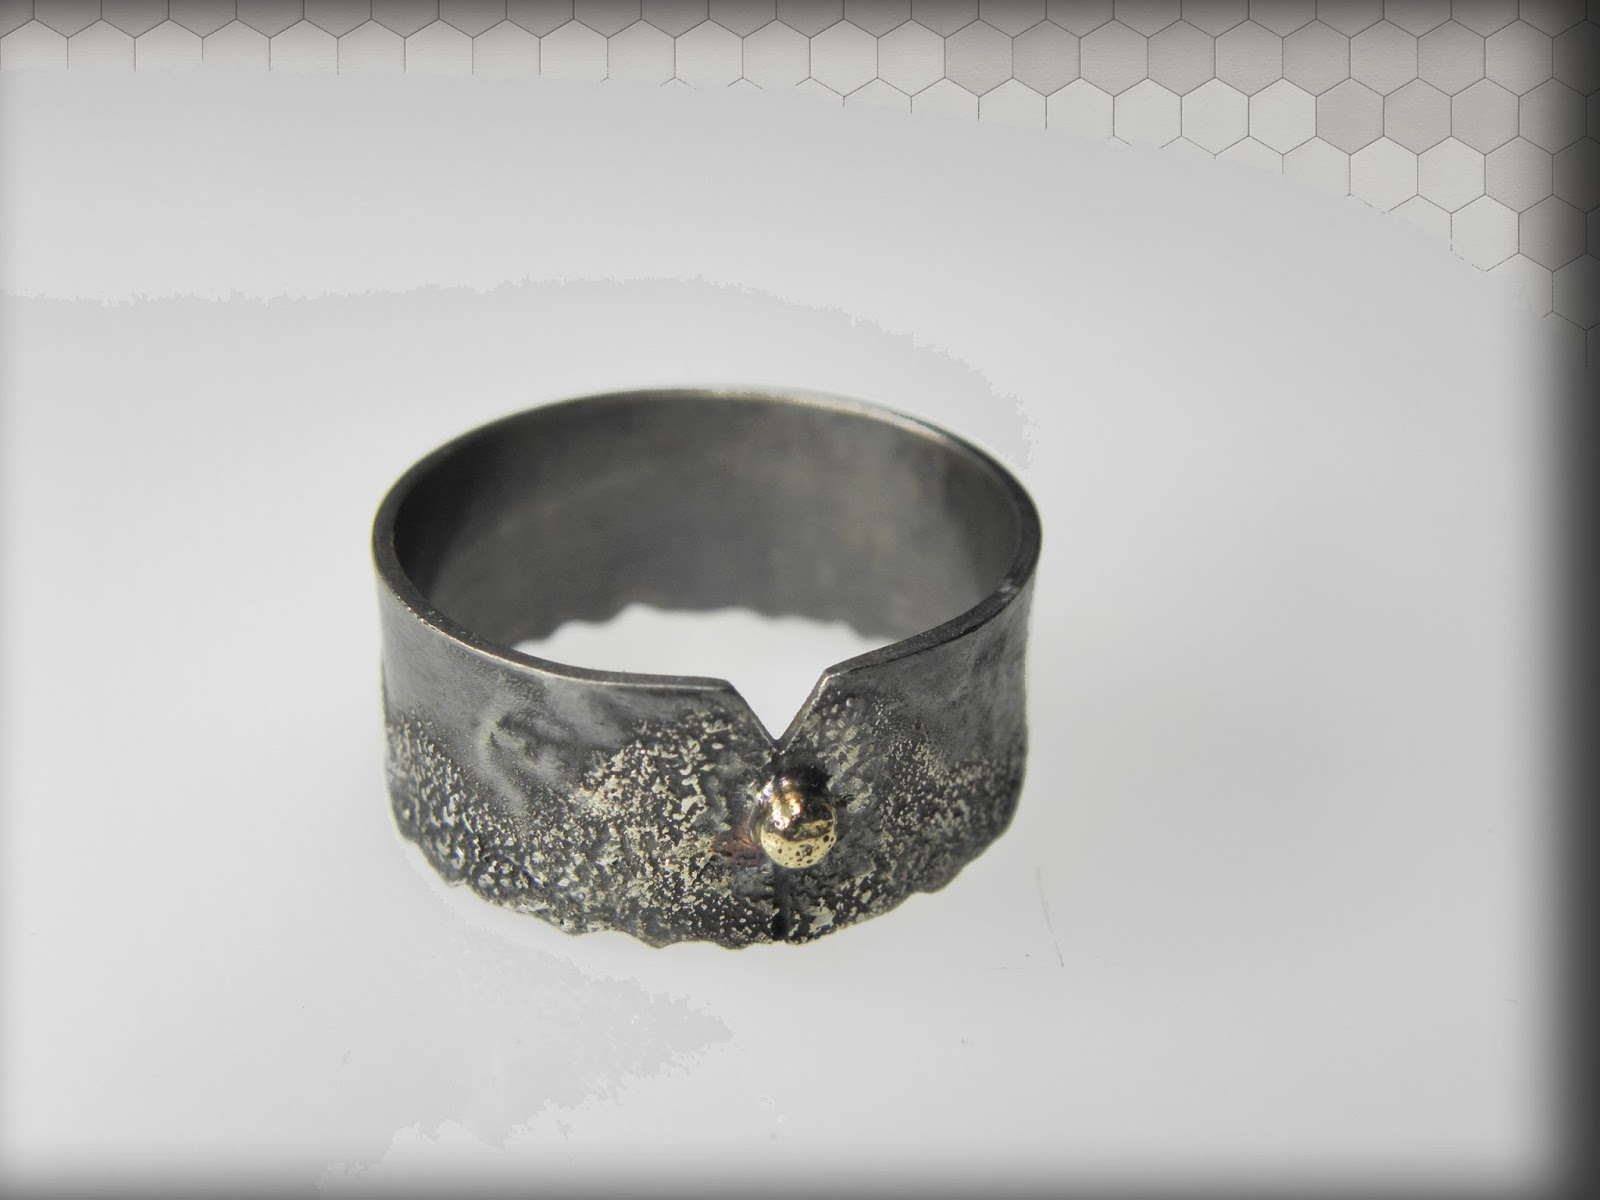 https://www.etsy.com/listing/177107744/silver-men-ring-with-14-k-yellow-gold?ref=related-0